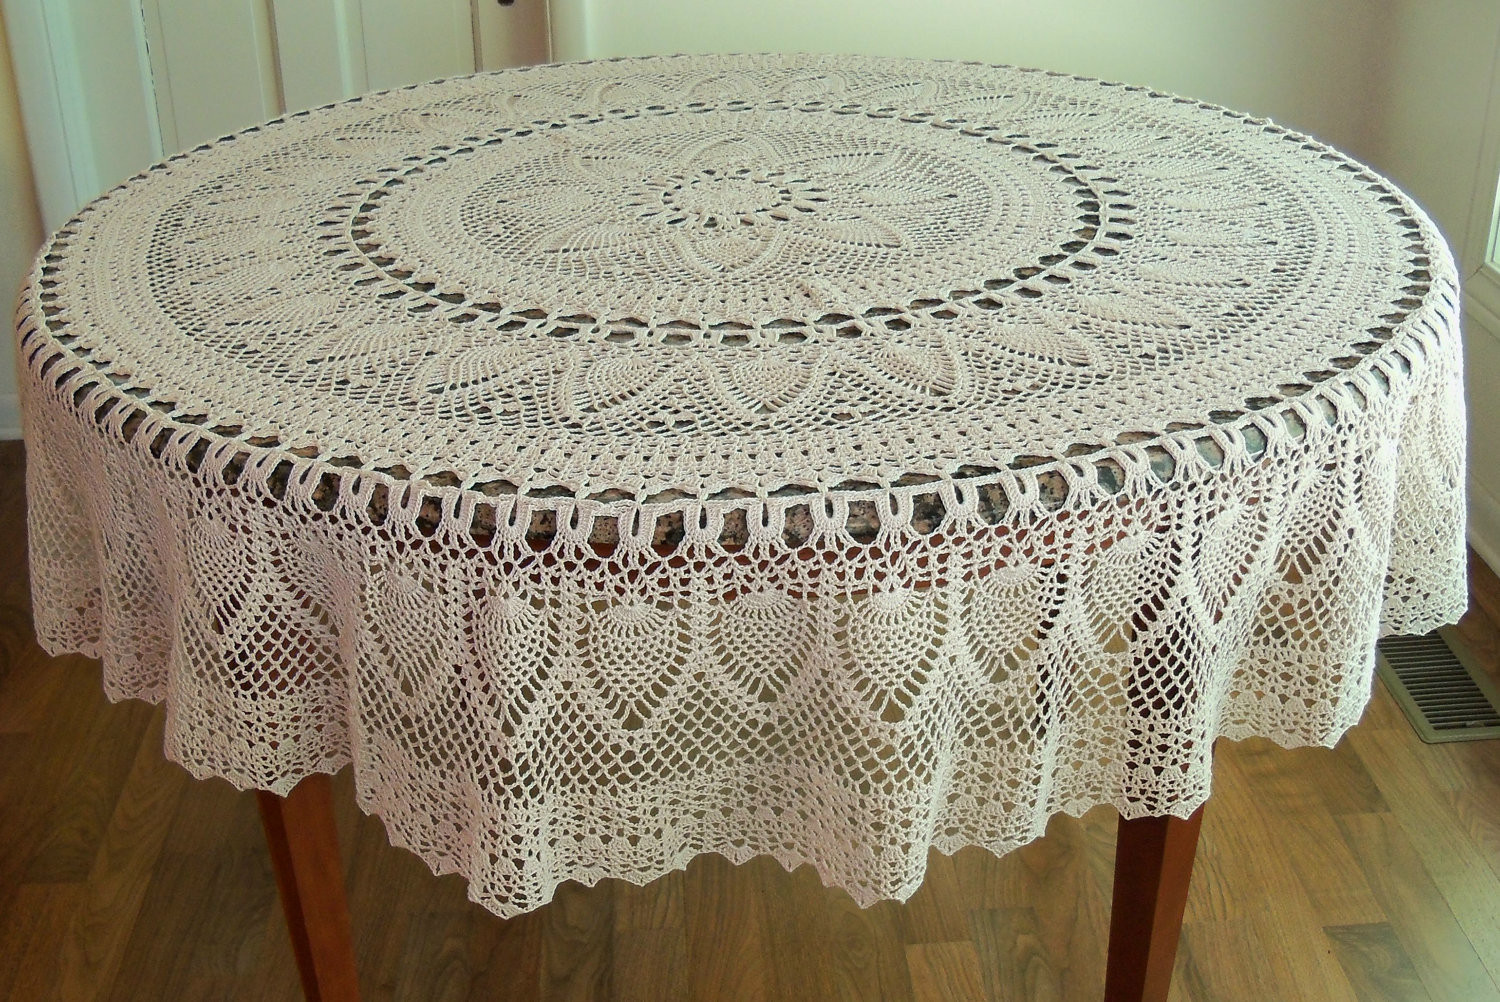 Free Crochet Tablecloth Patterns Awesome Decor Lovely Lace Tablecloths for Dining Table Decoration Of Contemporary 40 Pics Free Crochet Tablecloth Patterns